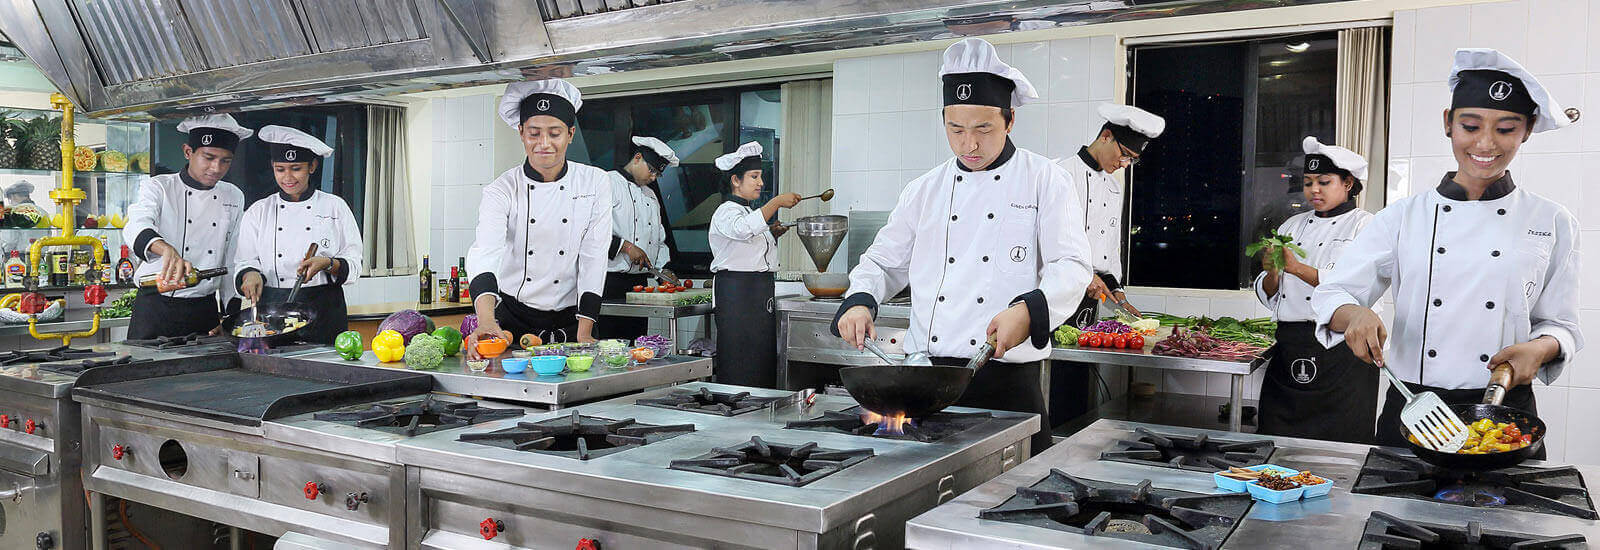 careers in hospitality and cruise industries there